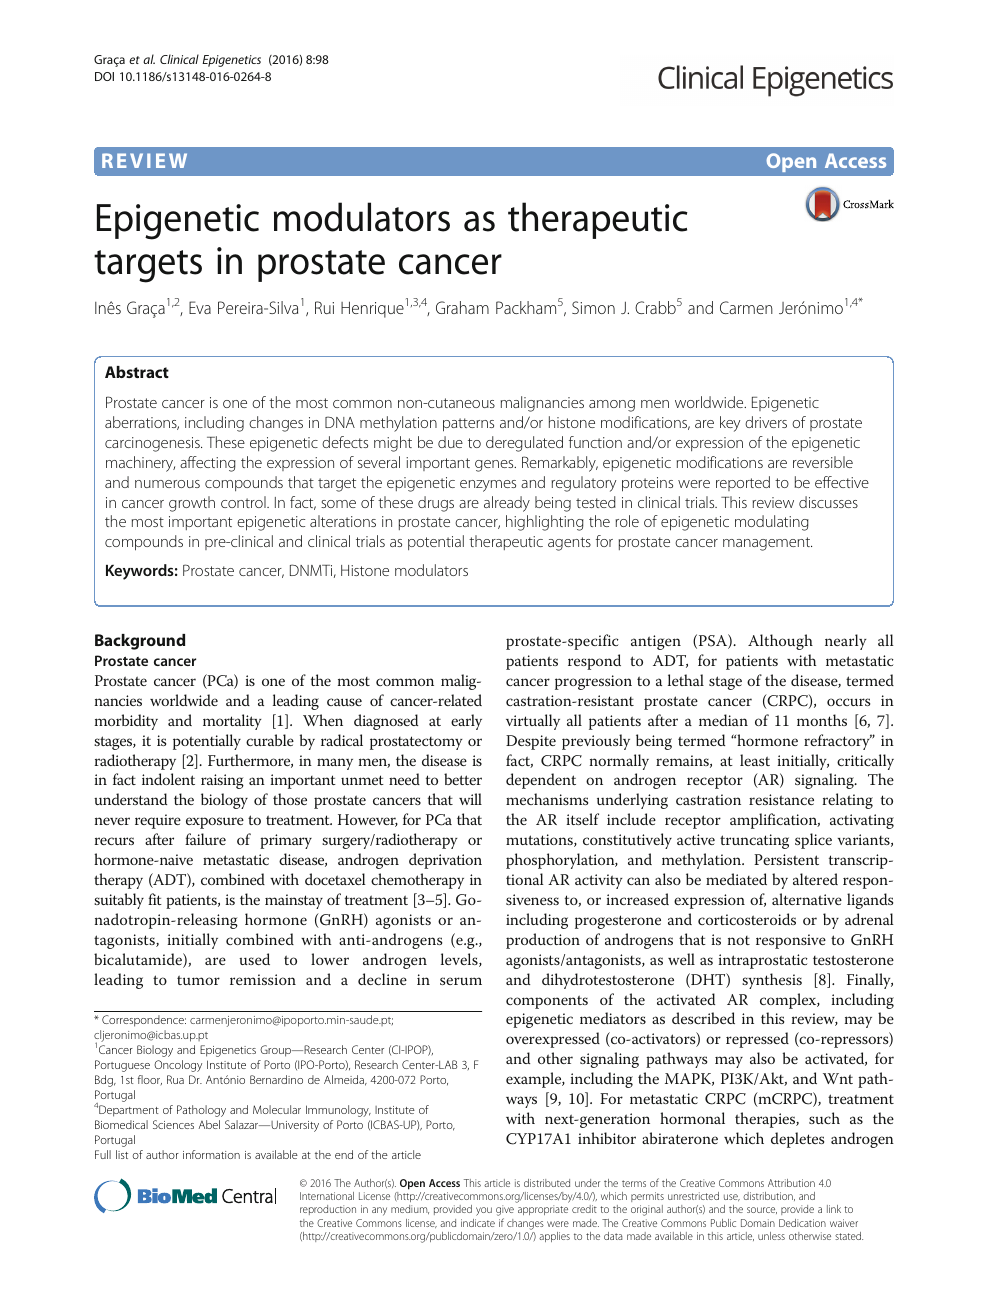 Epigenetic modulators as therapeutic targets in prostate